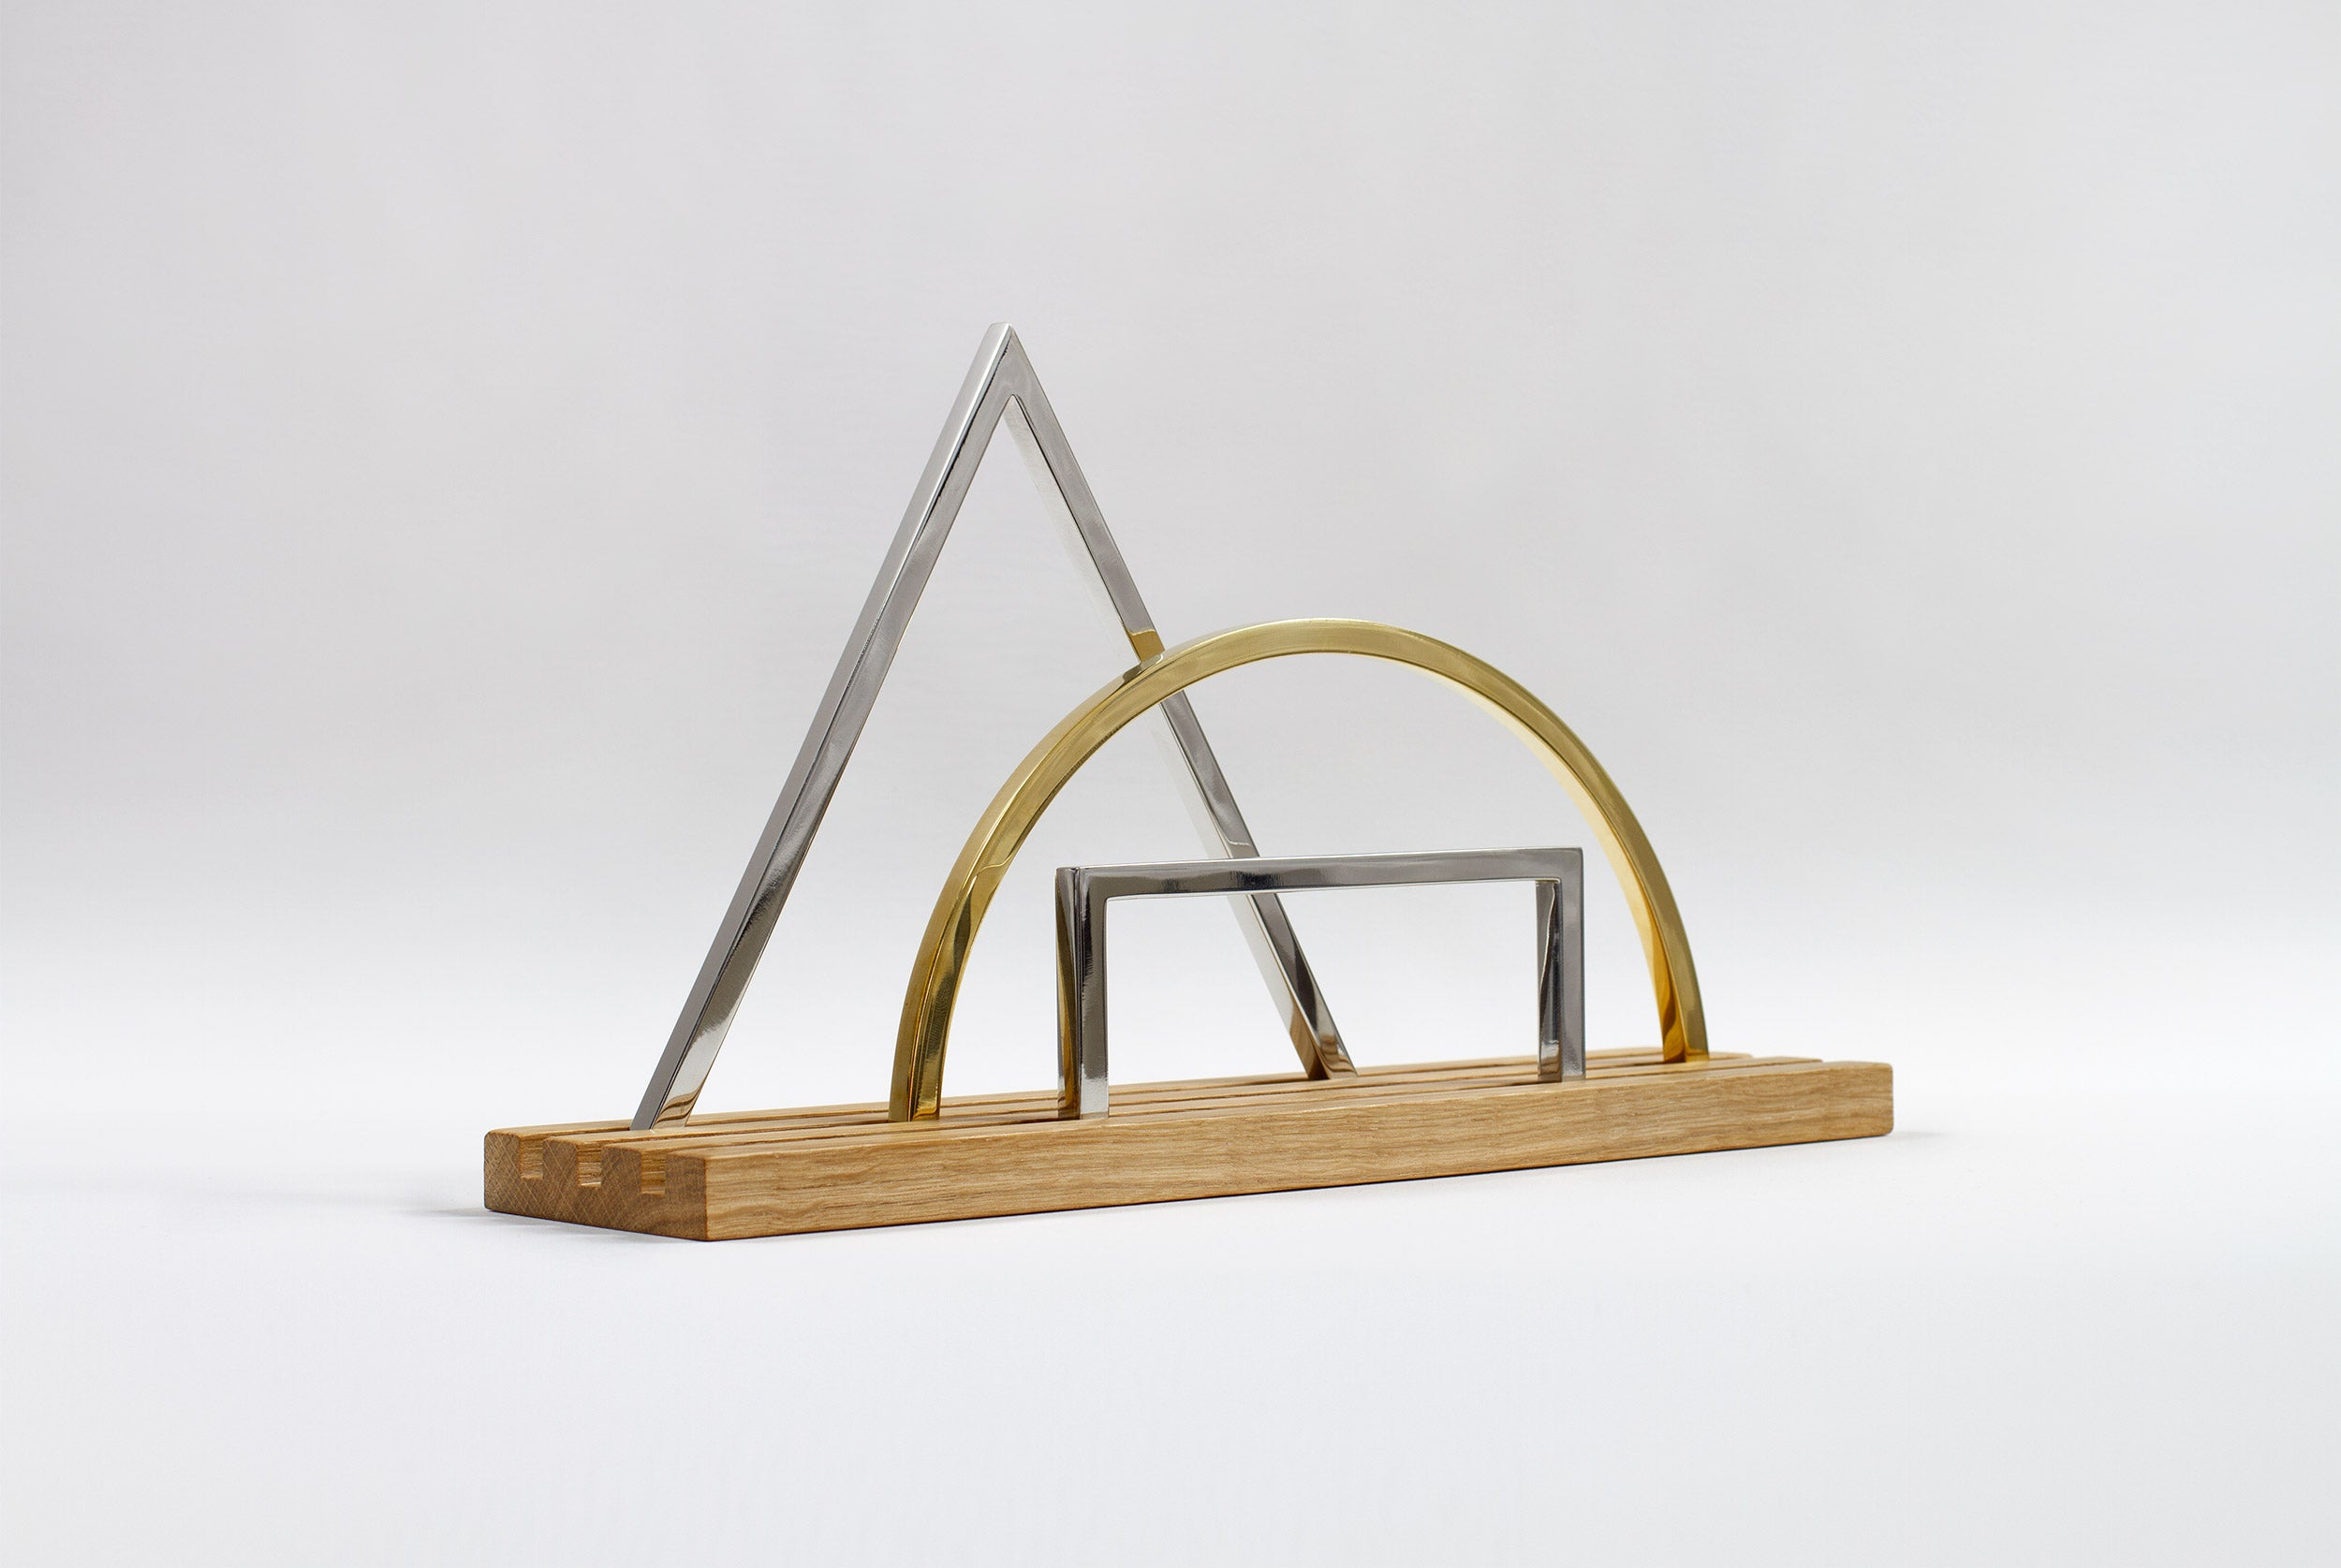 Image of Desk Organizer